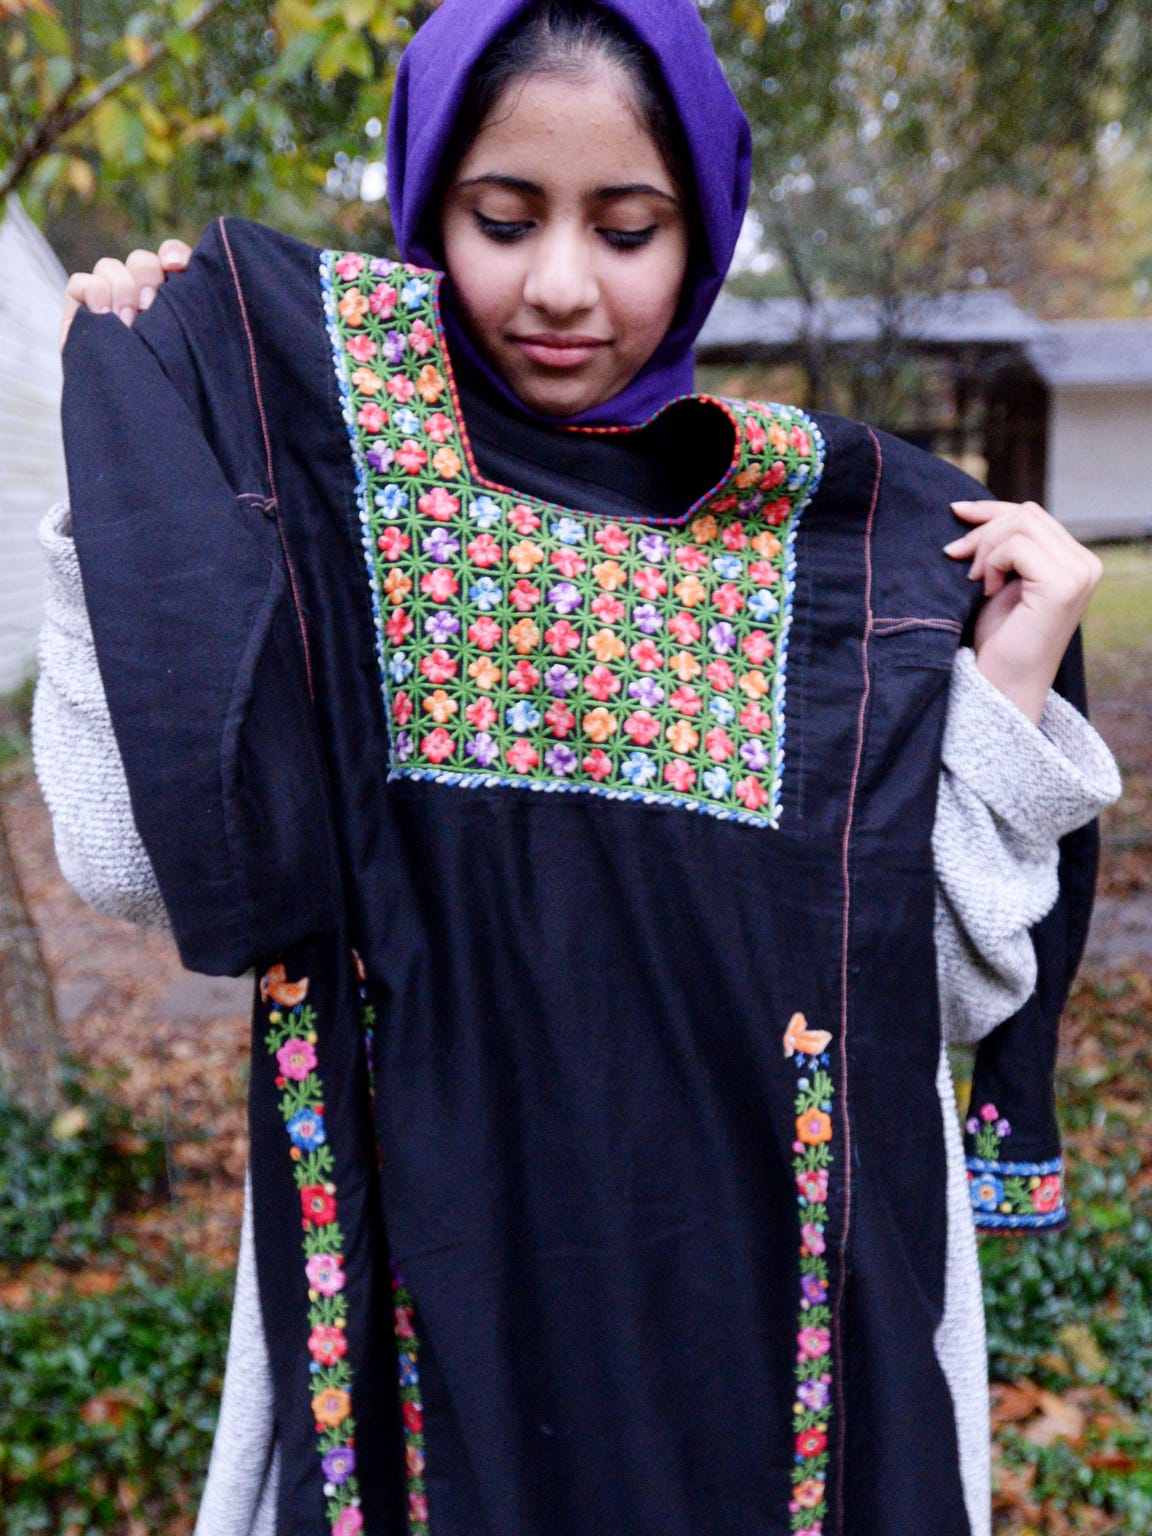 Noor Al-Shaier, an exchange student, holds up a traditional